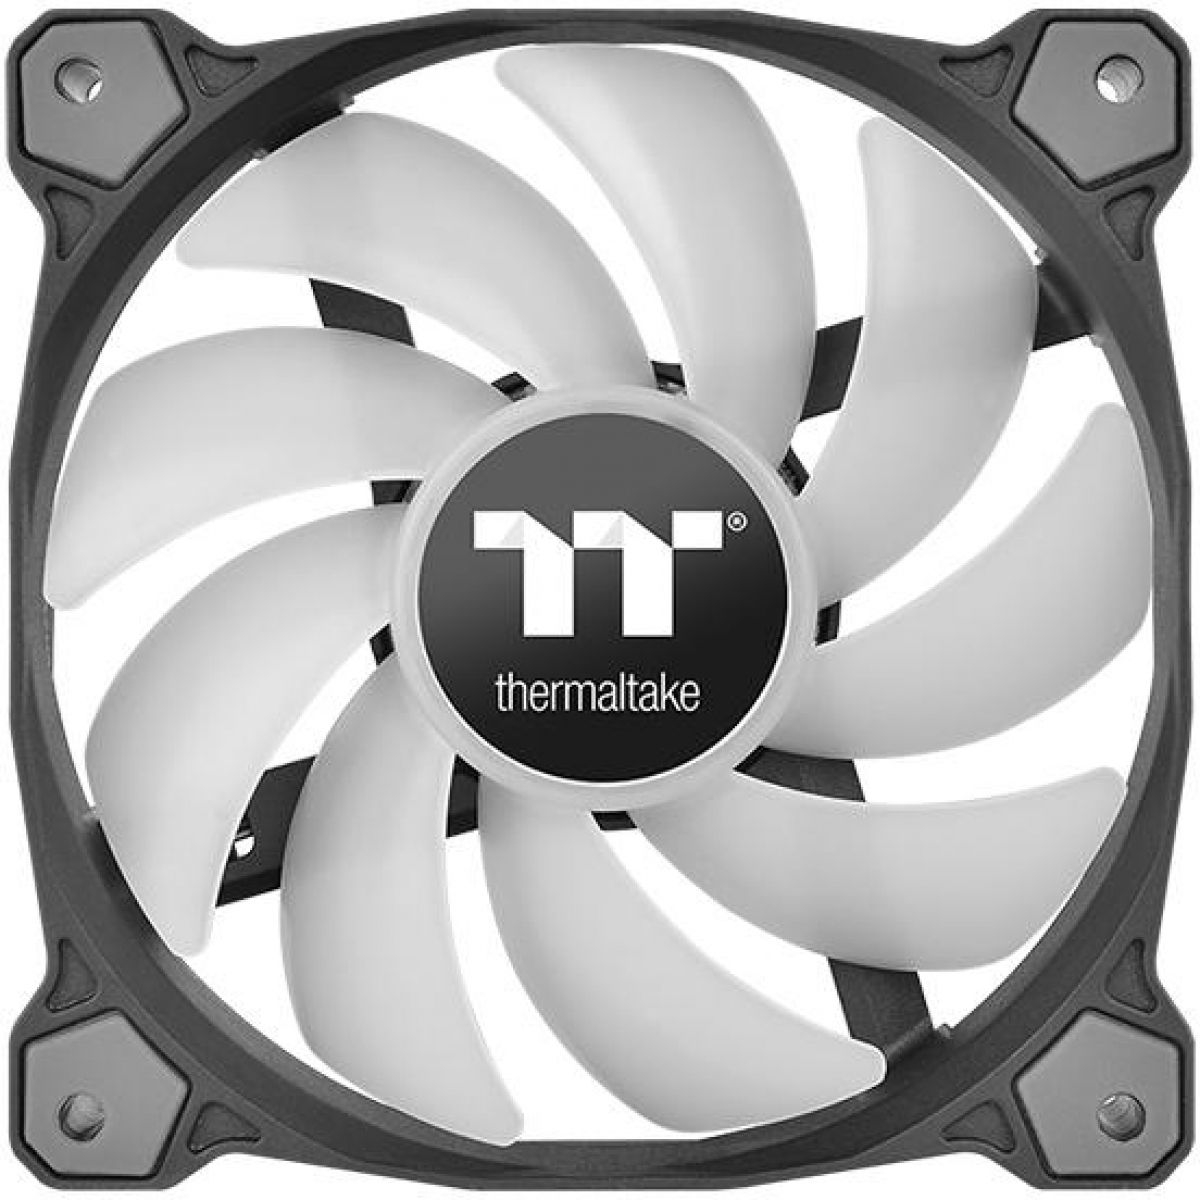 Kit Fan com 3 Unidades Thermaltake Pure Plus 12, RGB 120mm, com Controlador, CL-F063-PL12SW-A